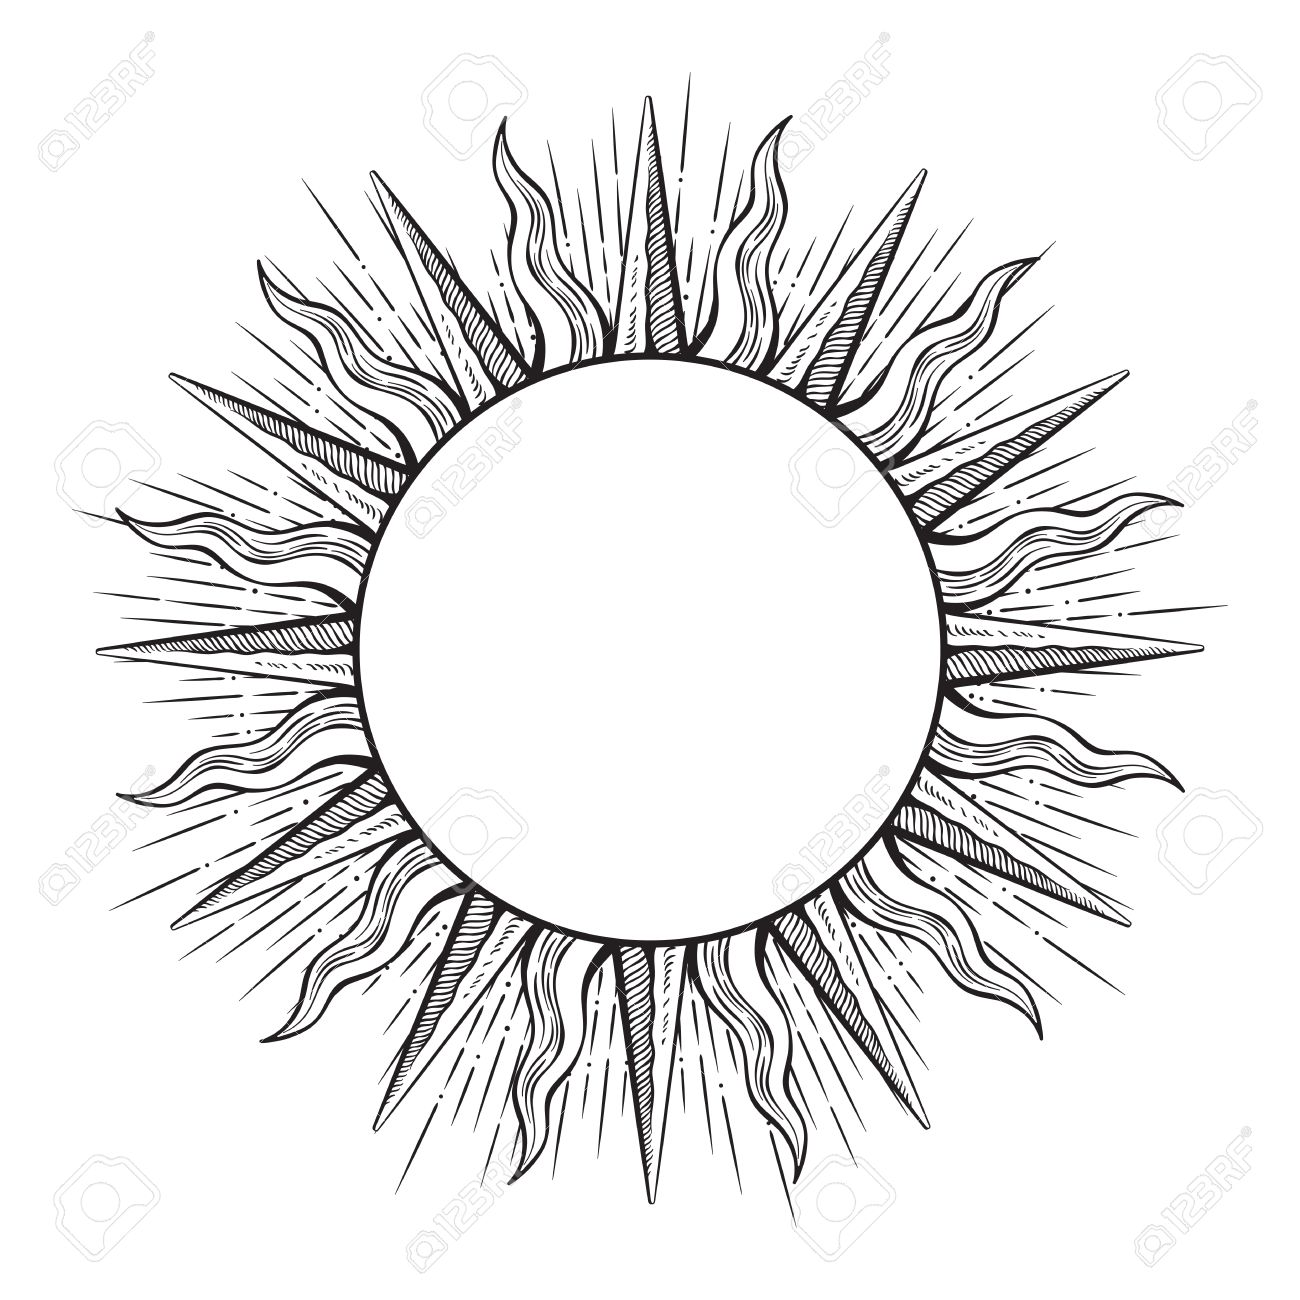 Hand drawn etching style frame in a shape of sun rays vector illustration. - 83410353